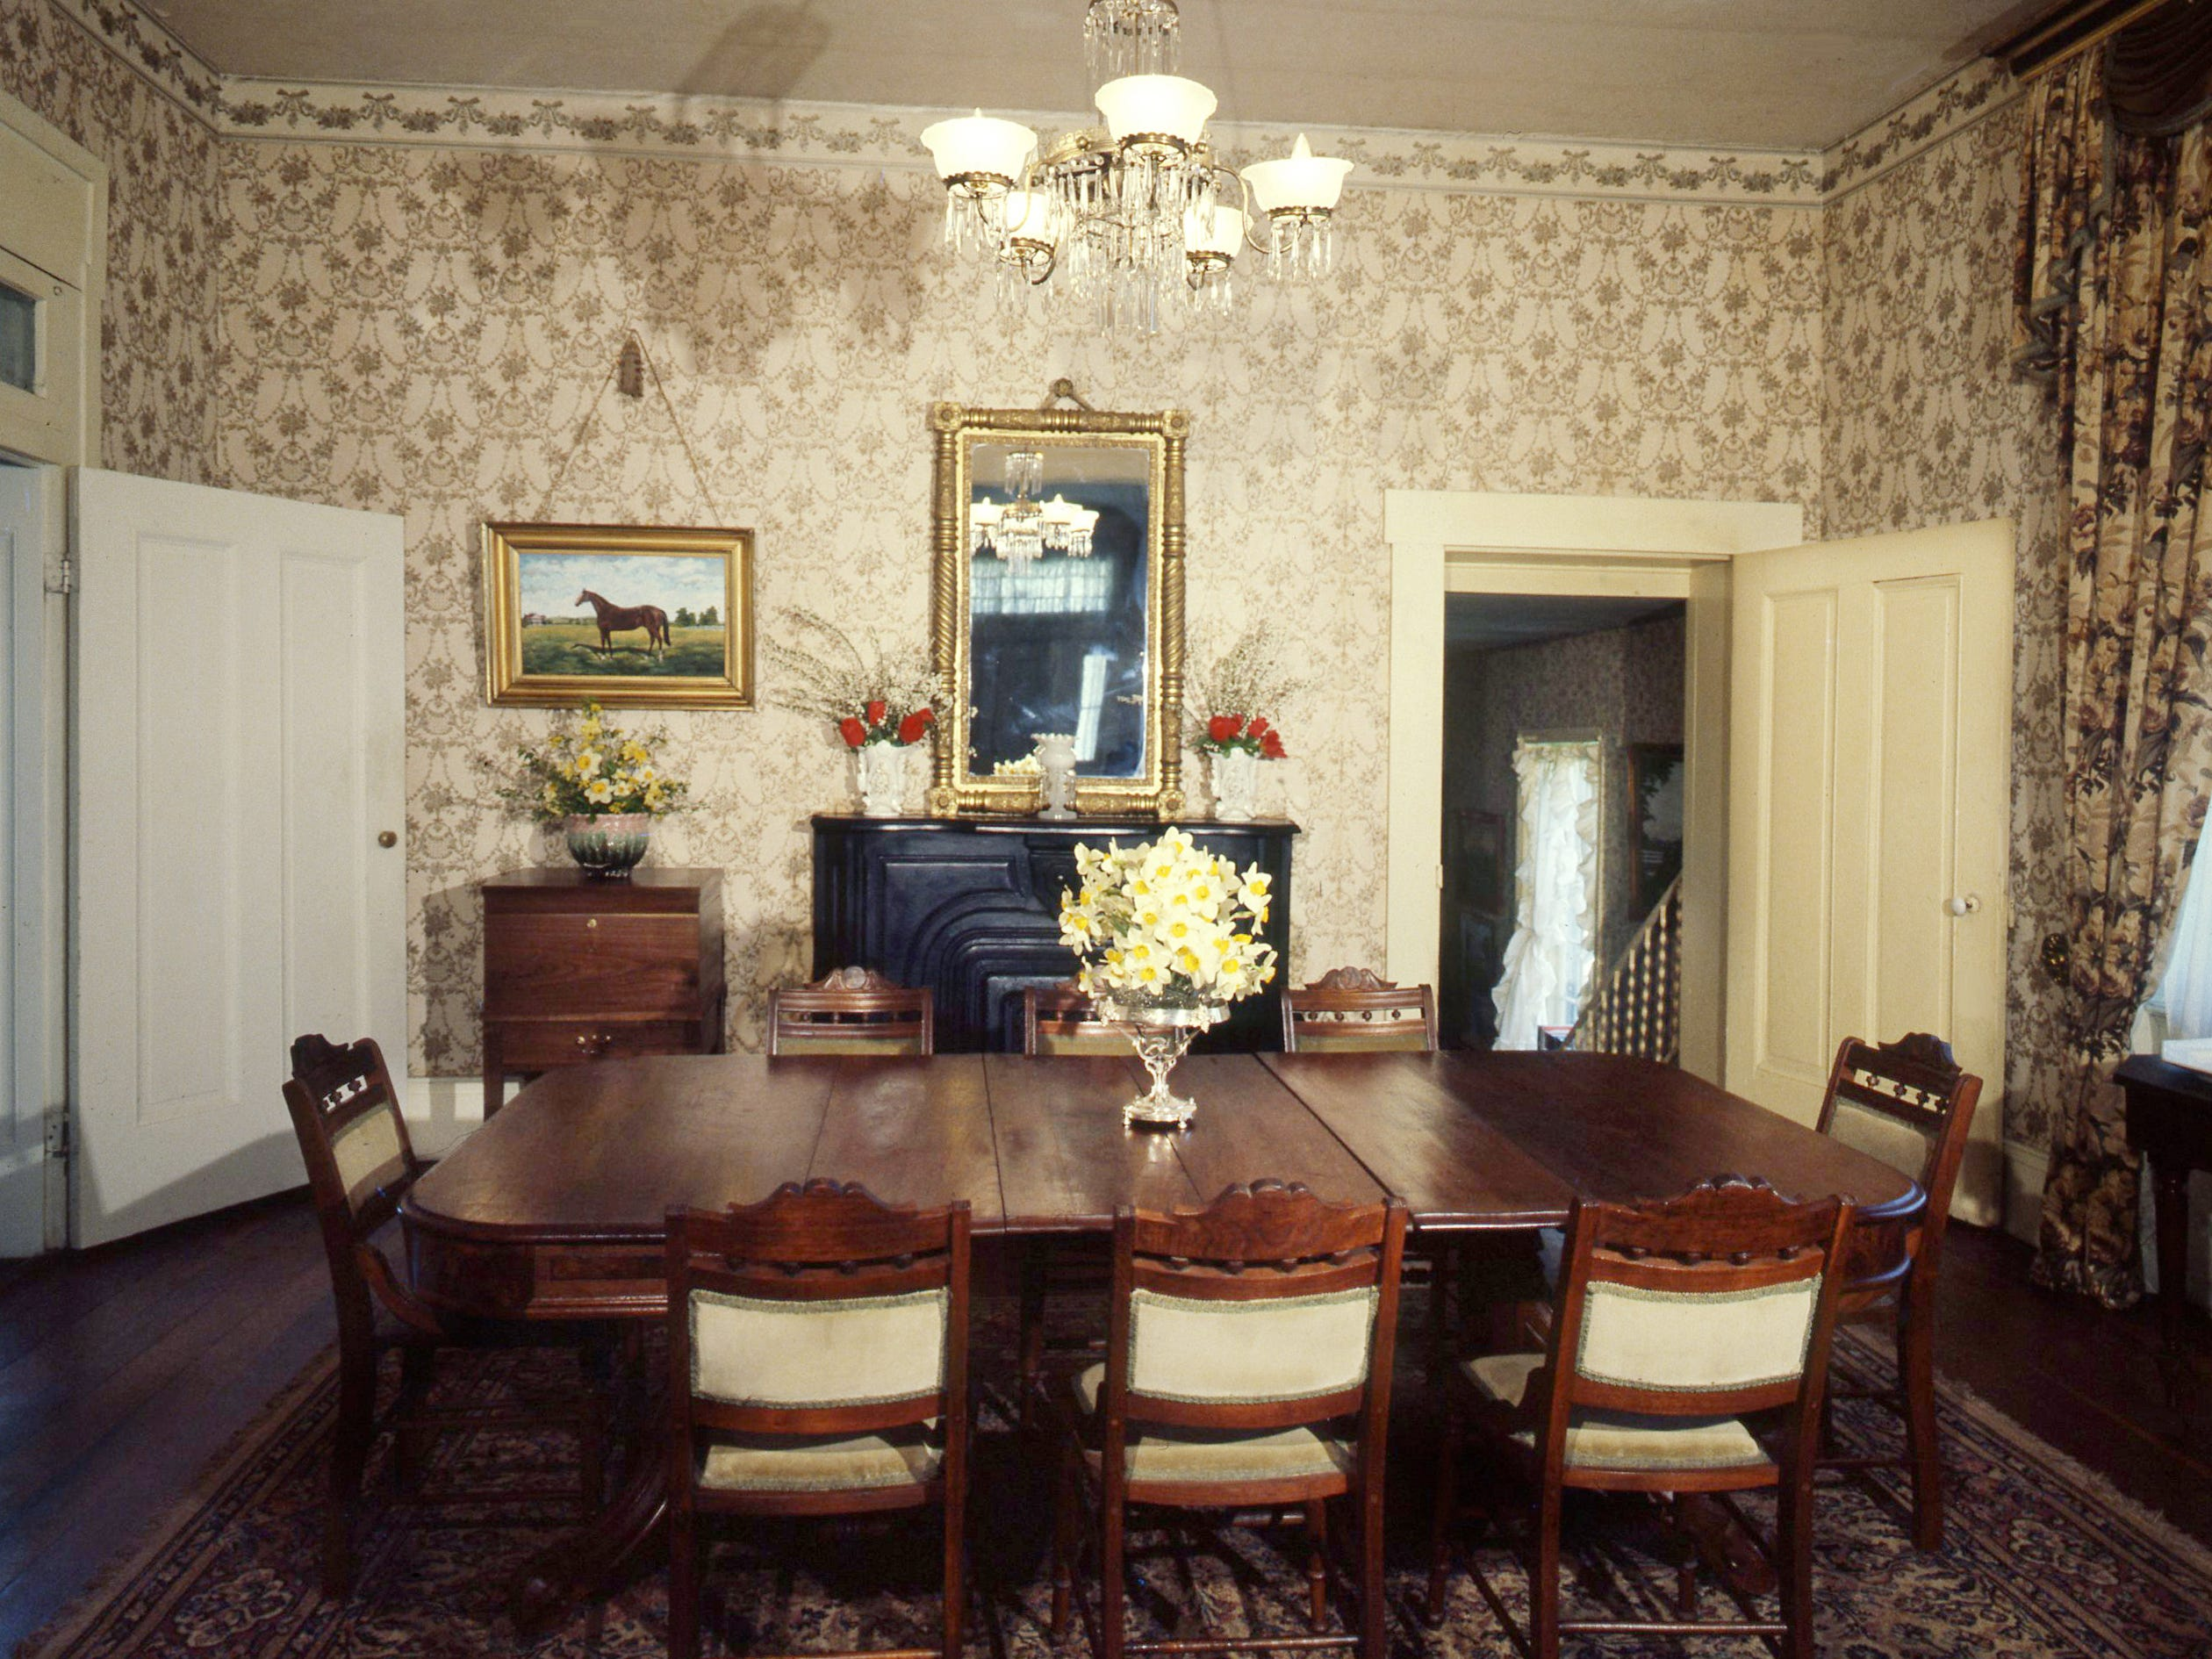 """The dining room of the """"Rosemont"""" home, pictured here on April 12, 1979, in Gallatin, was originally the back parlor with sliding doors to close it off from the front parlor. Door at left opens to the gallery hall, and the one at right leads down into a keeping-room kitchen that was the dining room when the house was built and completed in 1842 by Judge Jo Conn Guild."""